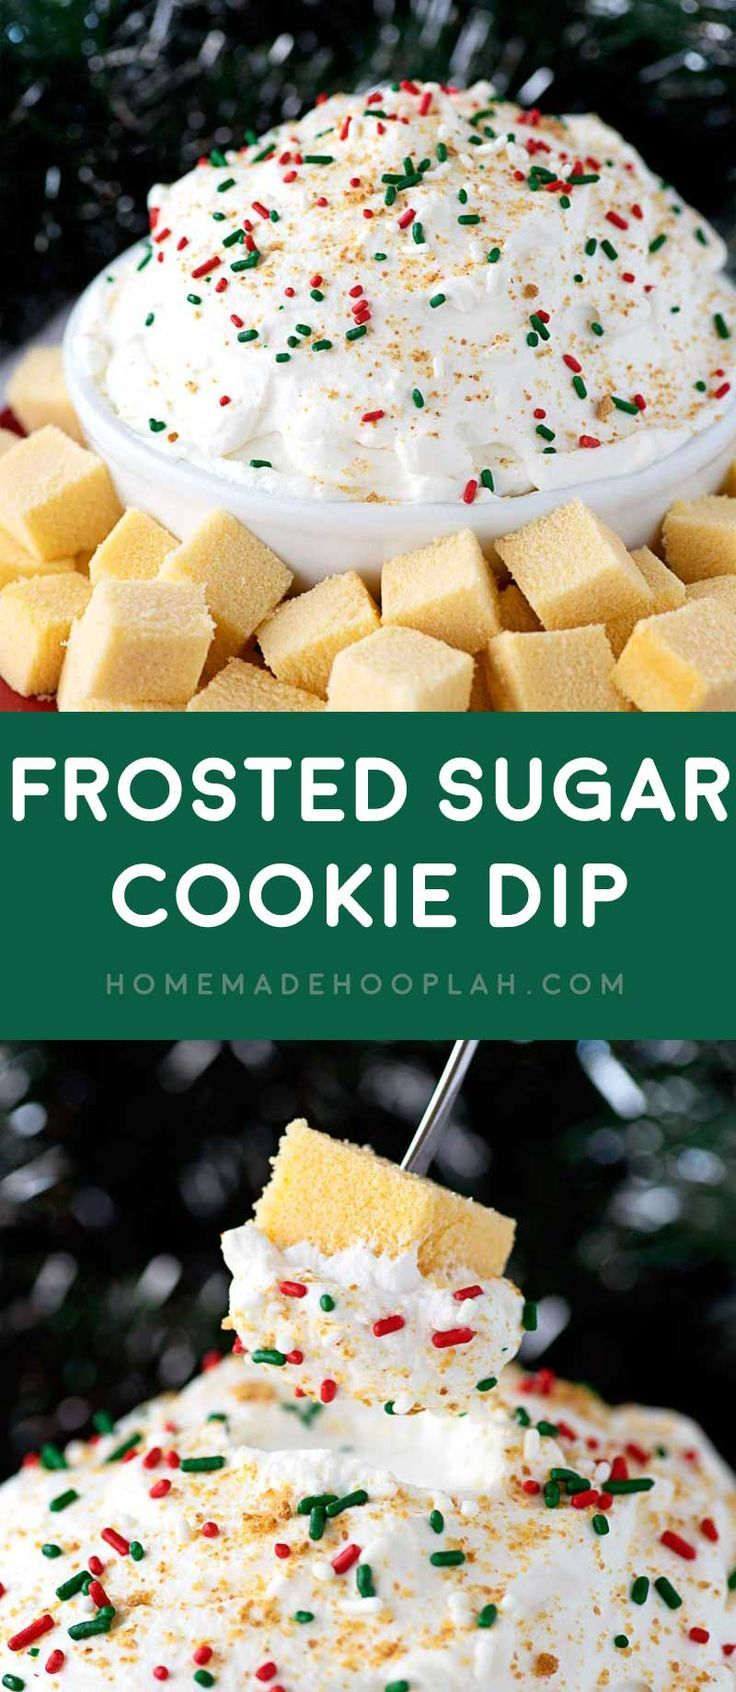 Frosted Sugar Cookie Dip! A fluffy dip made with International Delight Frosted Sugar Cookie Creamer and served fondue style with cubes of spongy pound cake. #ad #HolidayDelight #IDelight | HomemadeHooplah.com